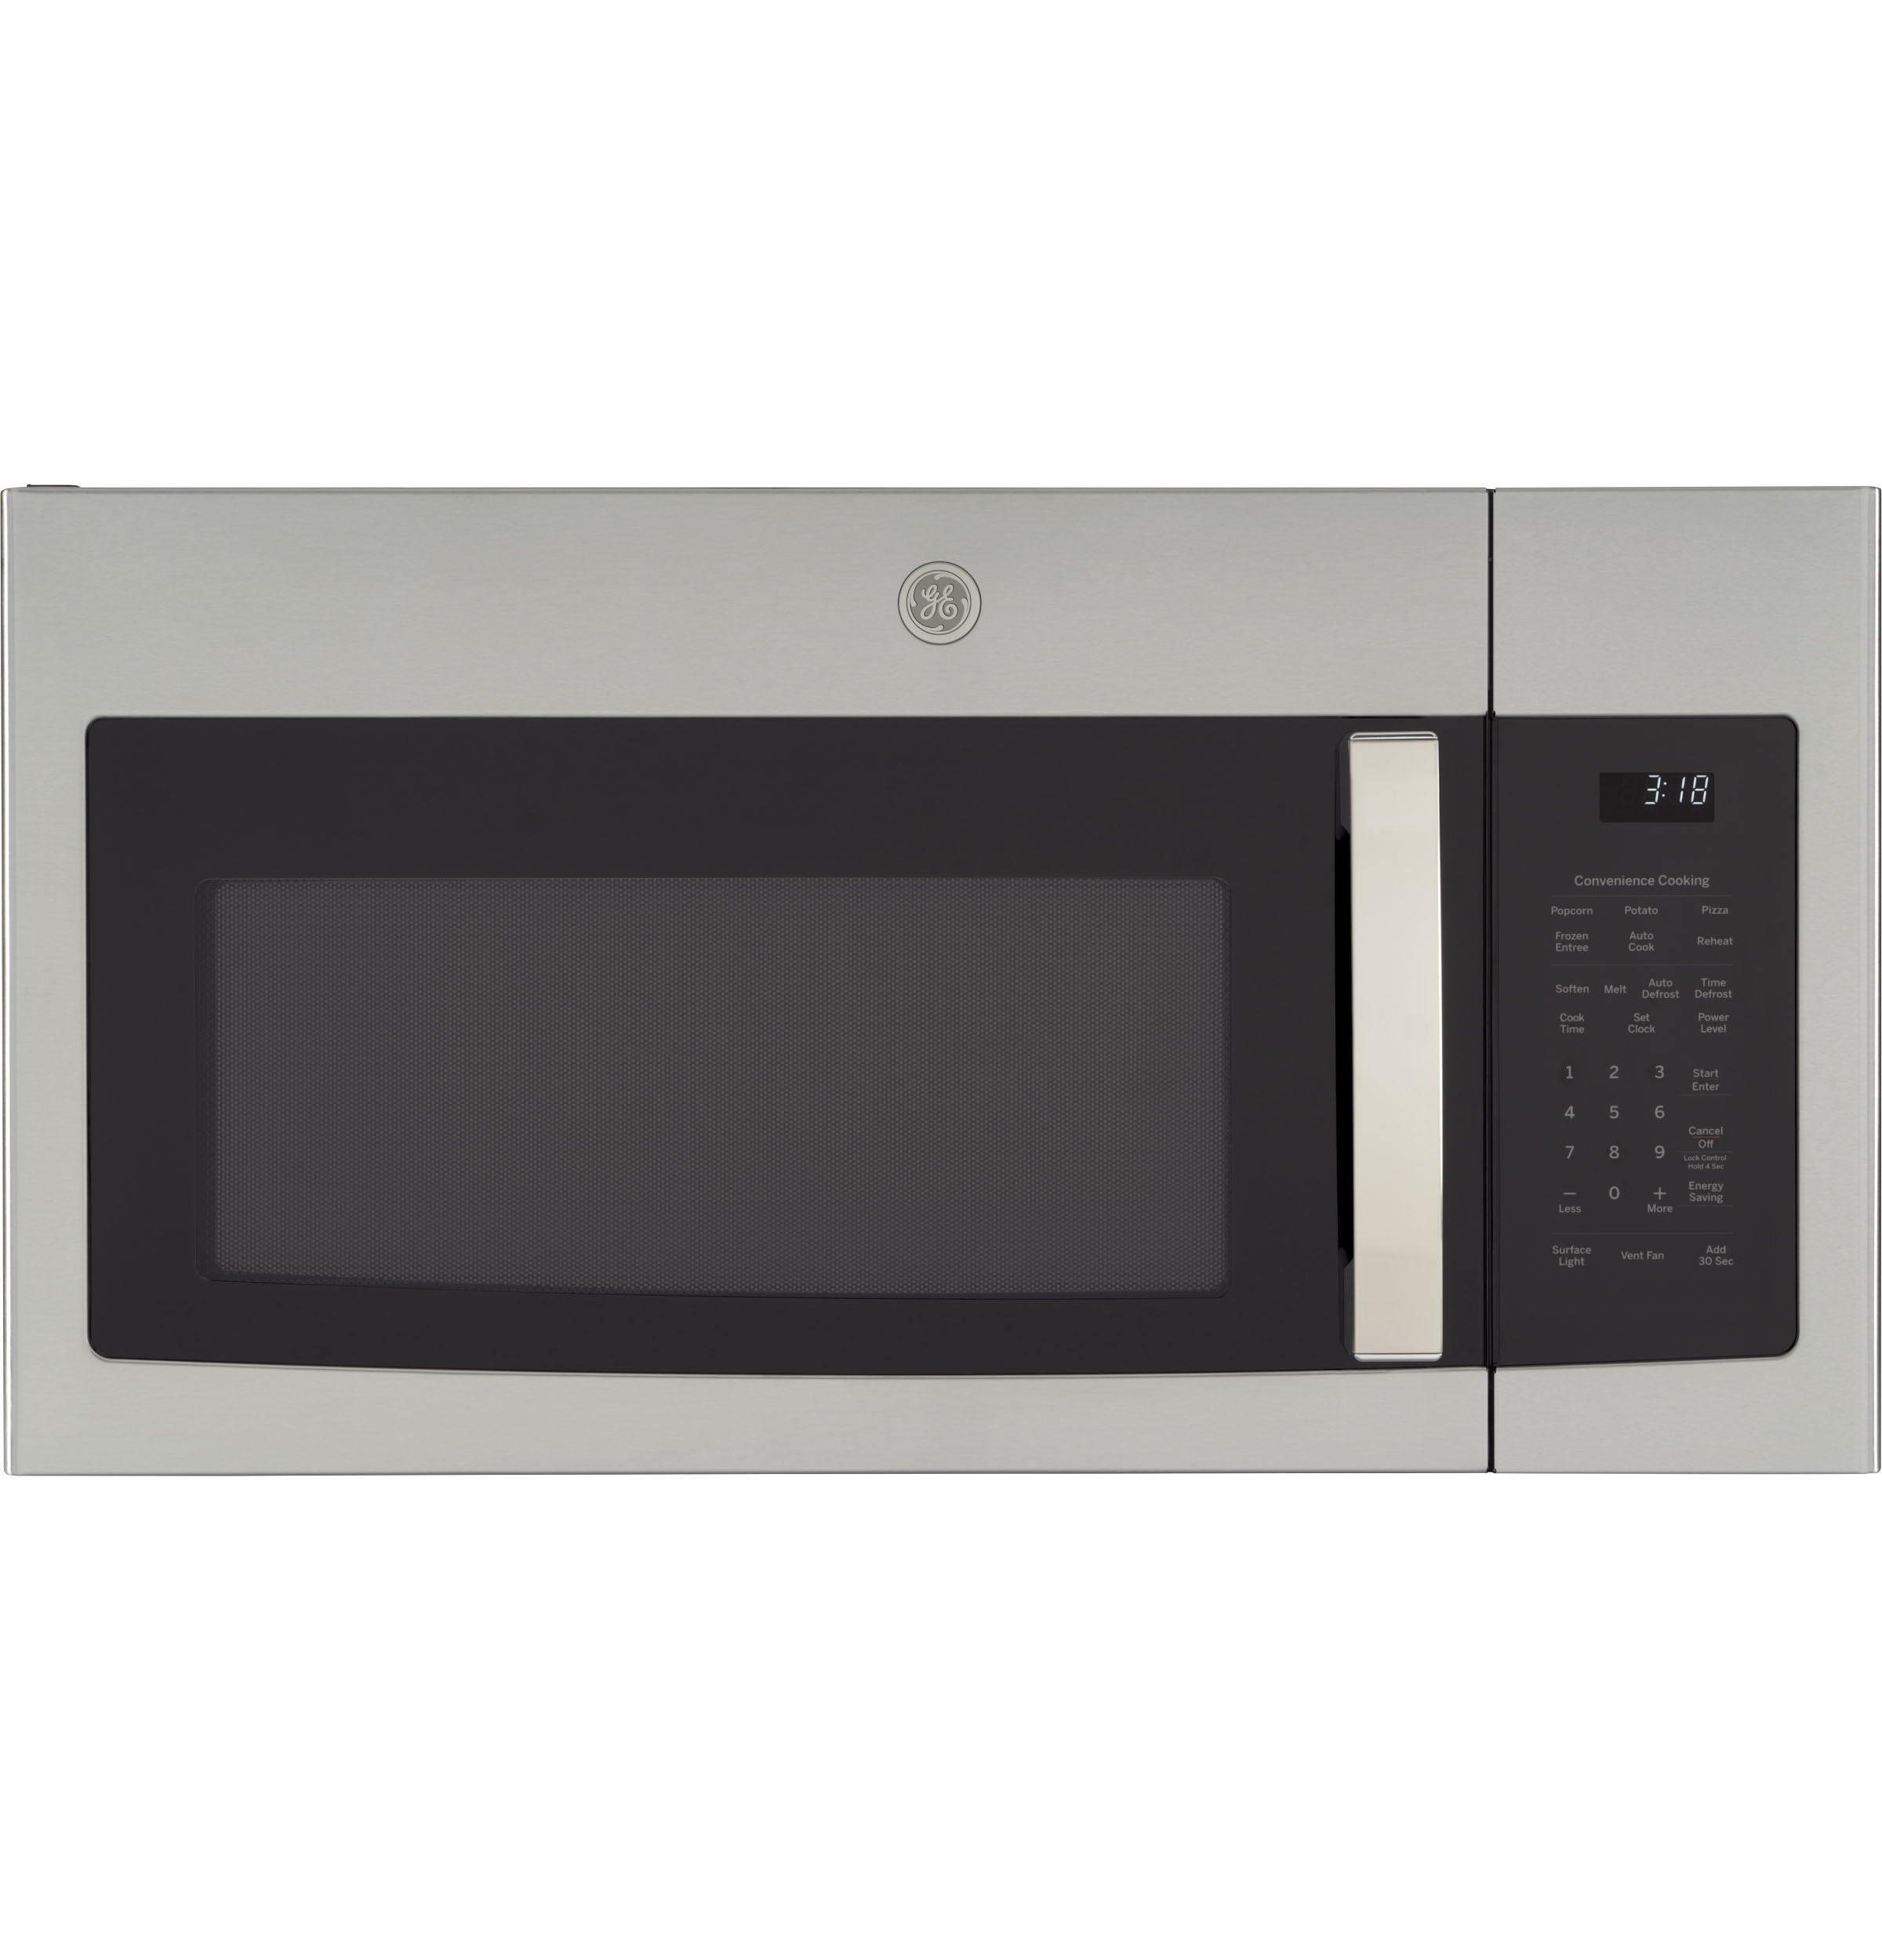 Cafe GE® 1.8 Cu. Ft. Over-the-Range Microwave Oven with Recirculating Venting